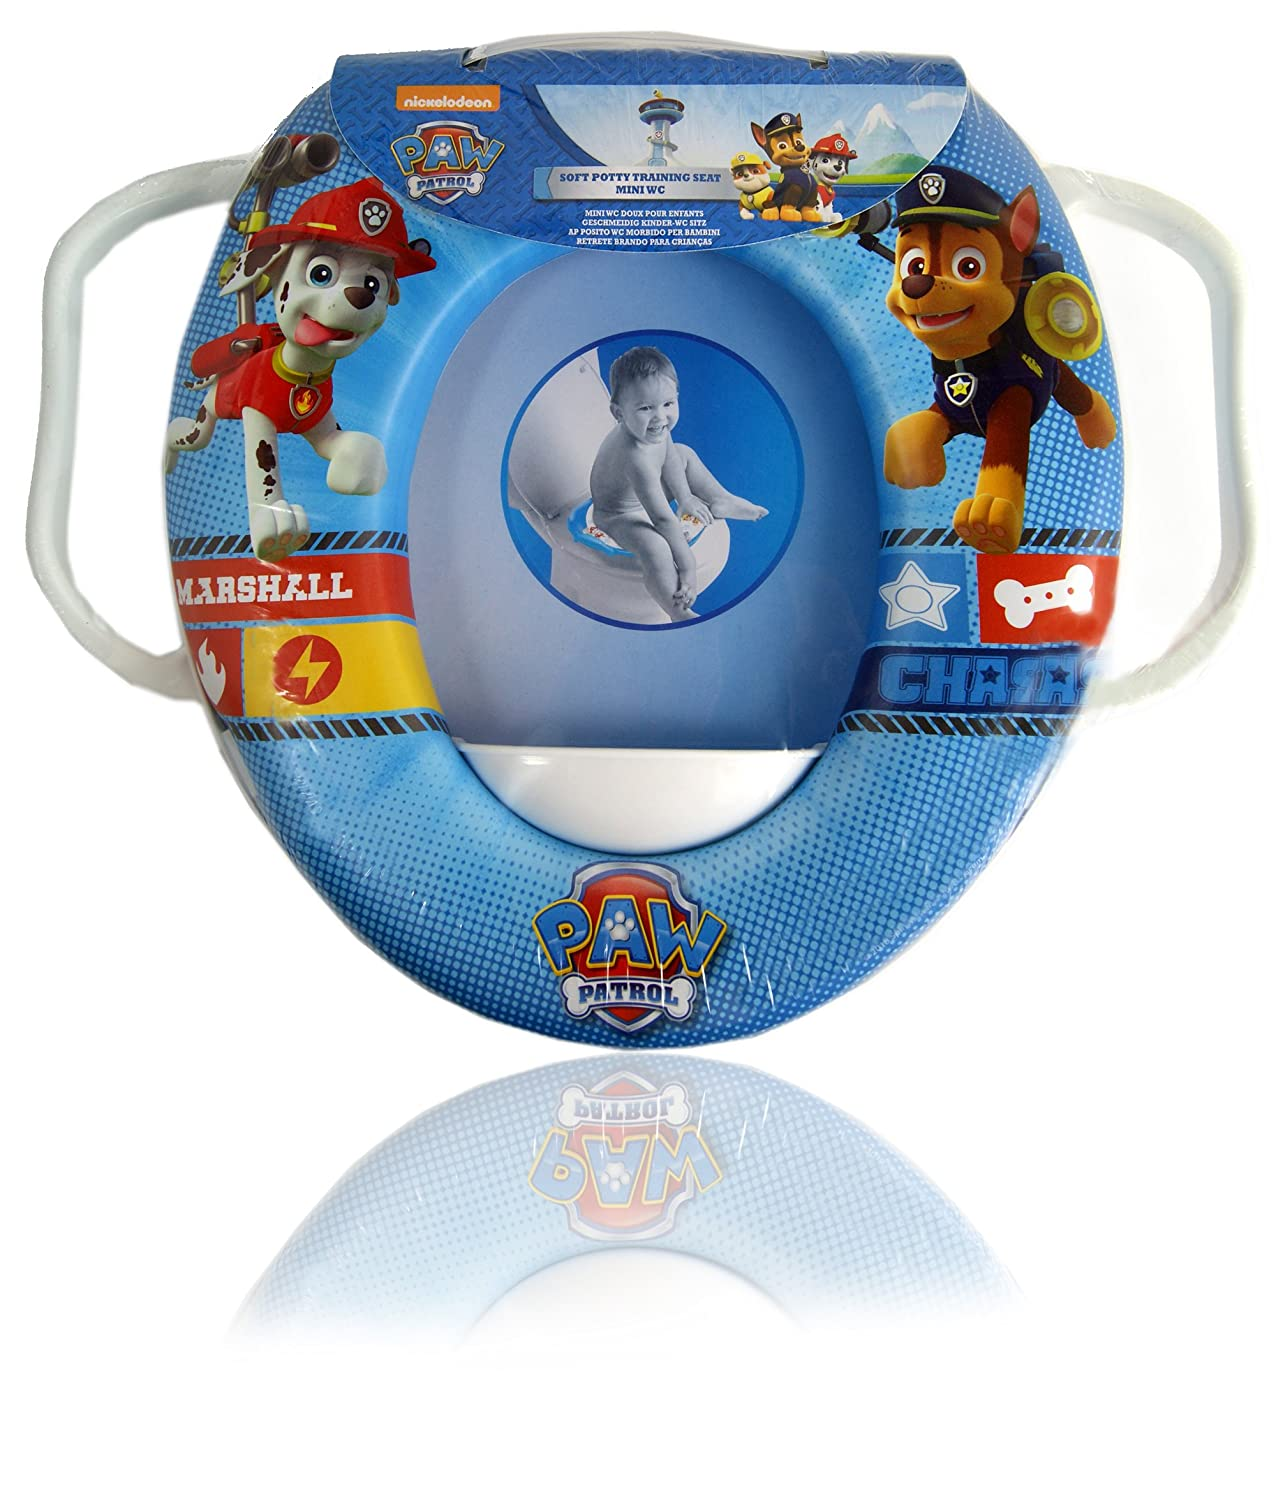 Baby Toilet Seat Children's Paw Patrol Soft Padded Toilet Seat (Training Seat)with Handle nickelodeon 06275